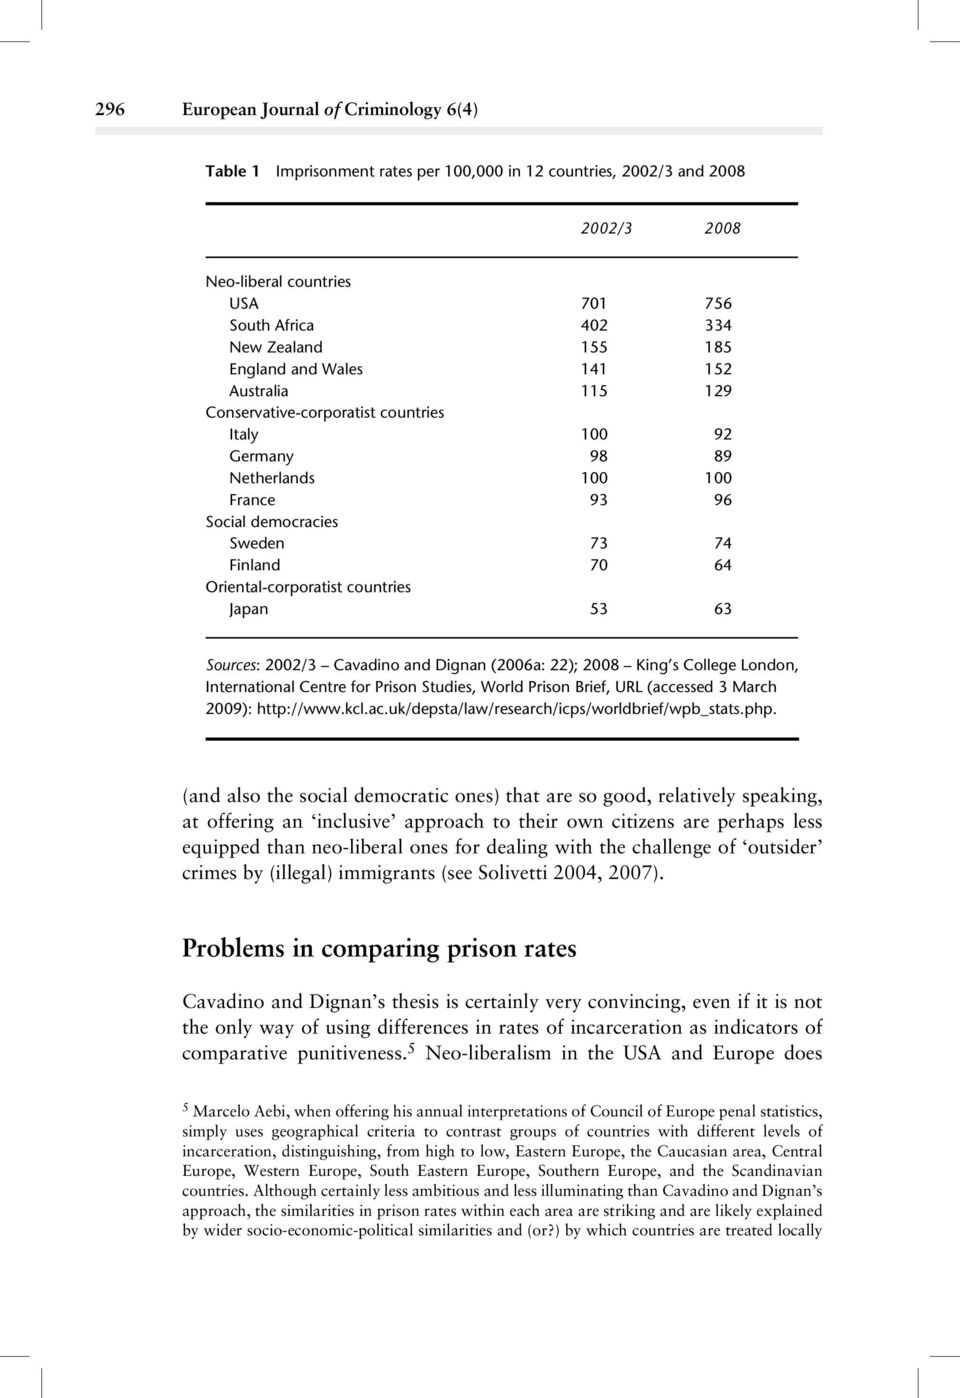 Oriental-corporatist countries Japan 53 63 Sources: 2002/3 Cavadino and Dignan (2006a: 22); 2008 King s College London, International Centre for Prison Studies, World Prison Brief, URL (accessed 3